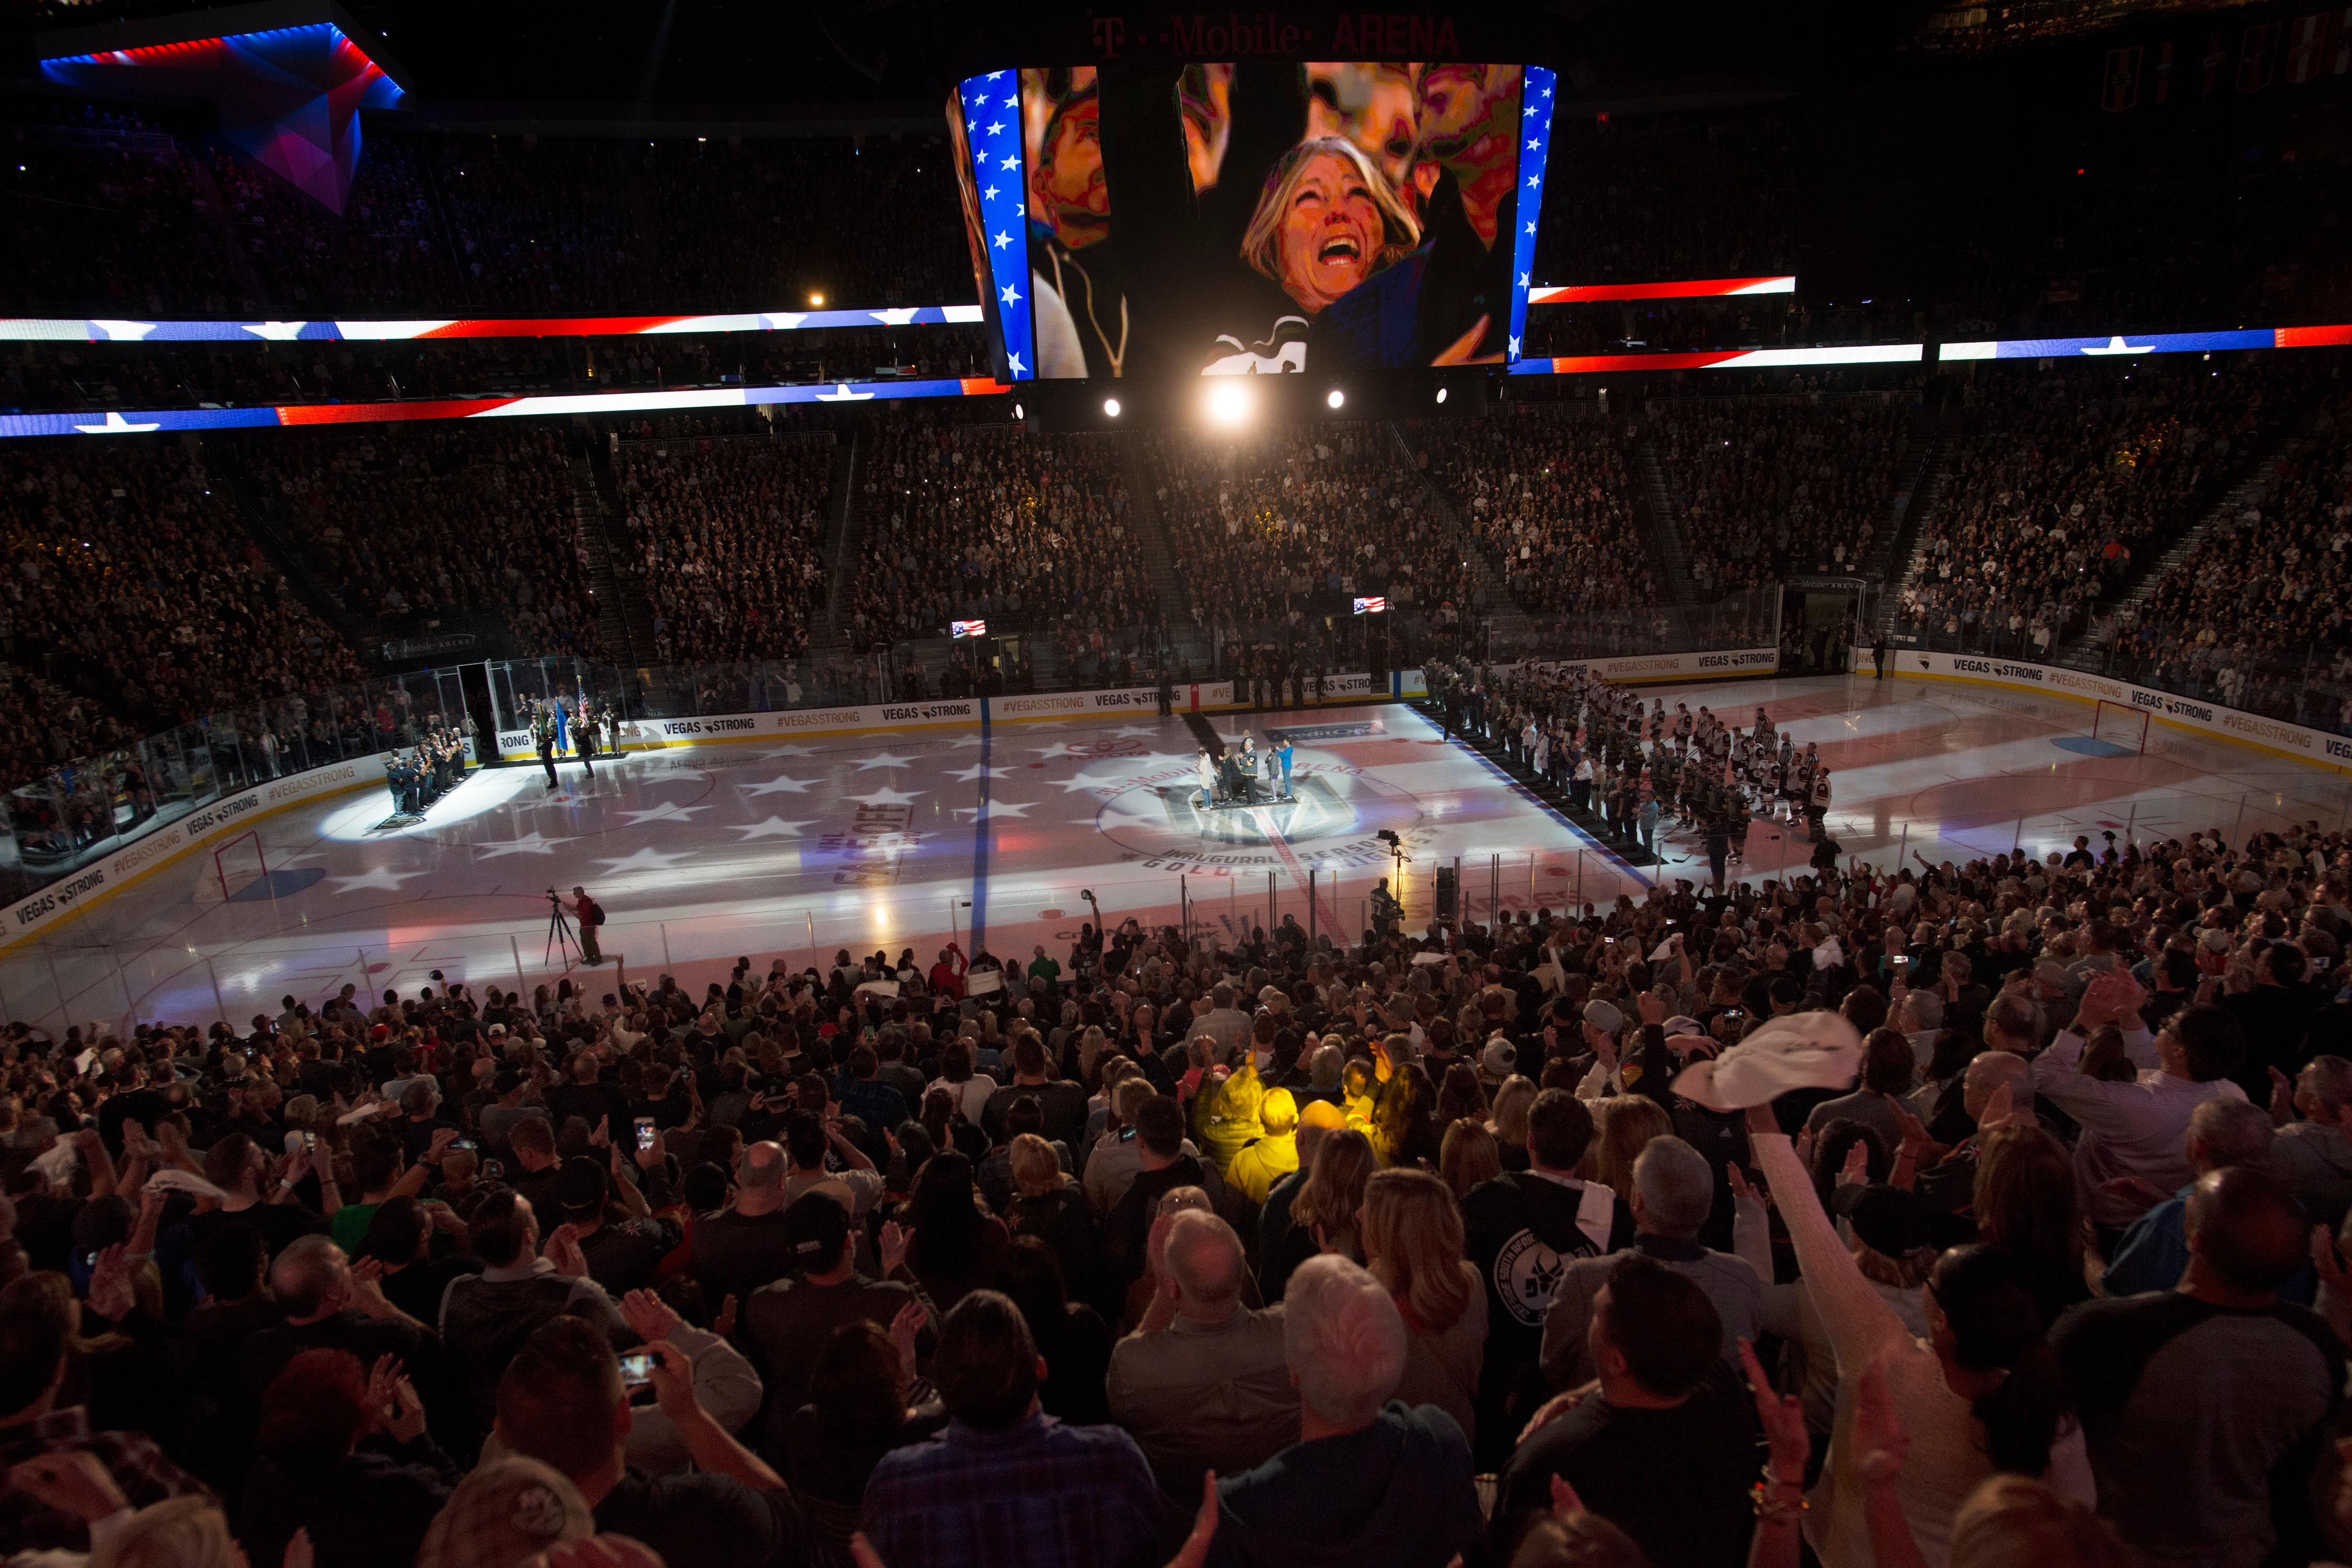 The national anthem is sung before the Vegas Golden Knights home opener against the Arizona Coyotes Tuesday, Oct. 10, 2017, at the T-Mobile Arena. The Knights won 5-2 to extend their winning streak to 3-0. CREDIT: Sam Morris/Las Vegas News Bureau